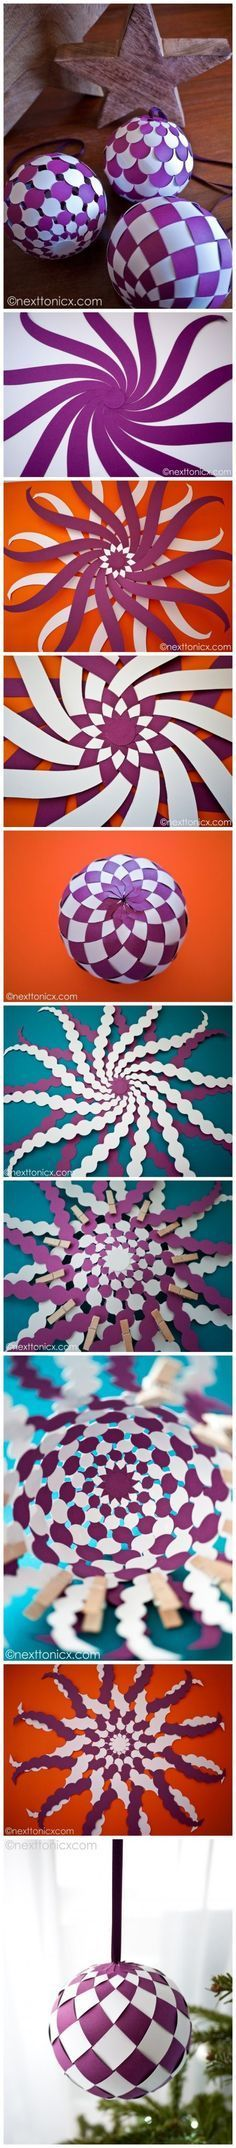 Ideas for diy paper ornaments origami ball Origami And Kirigami, Origami Paper, Diy Paper, Paper Art, Paper Crafts, Origami Ball, Oragami, Diy Origami, Creative Crafts